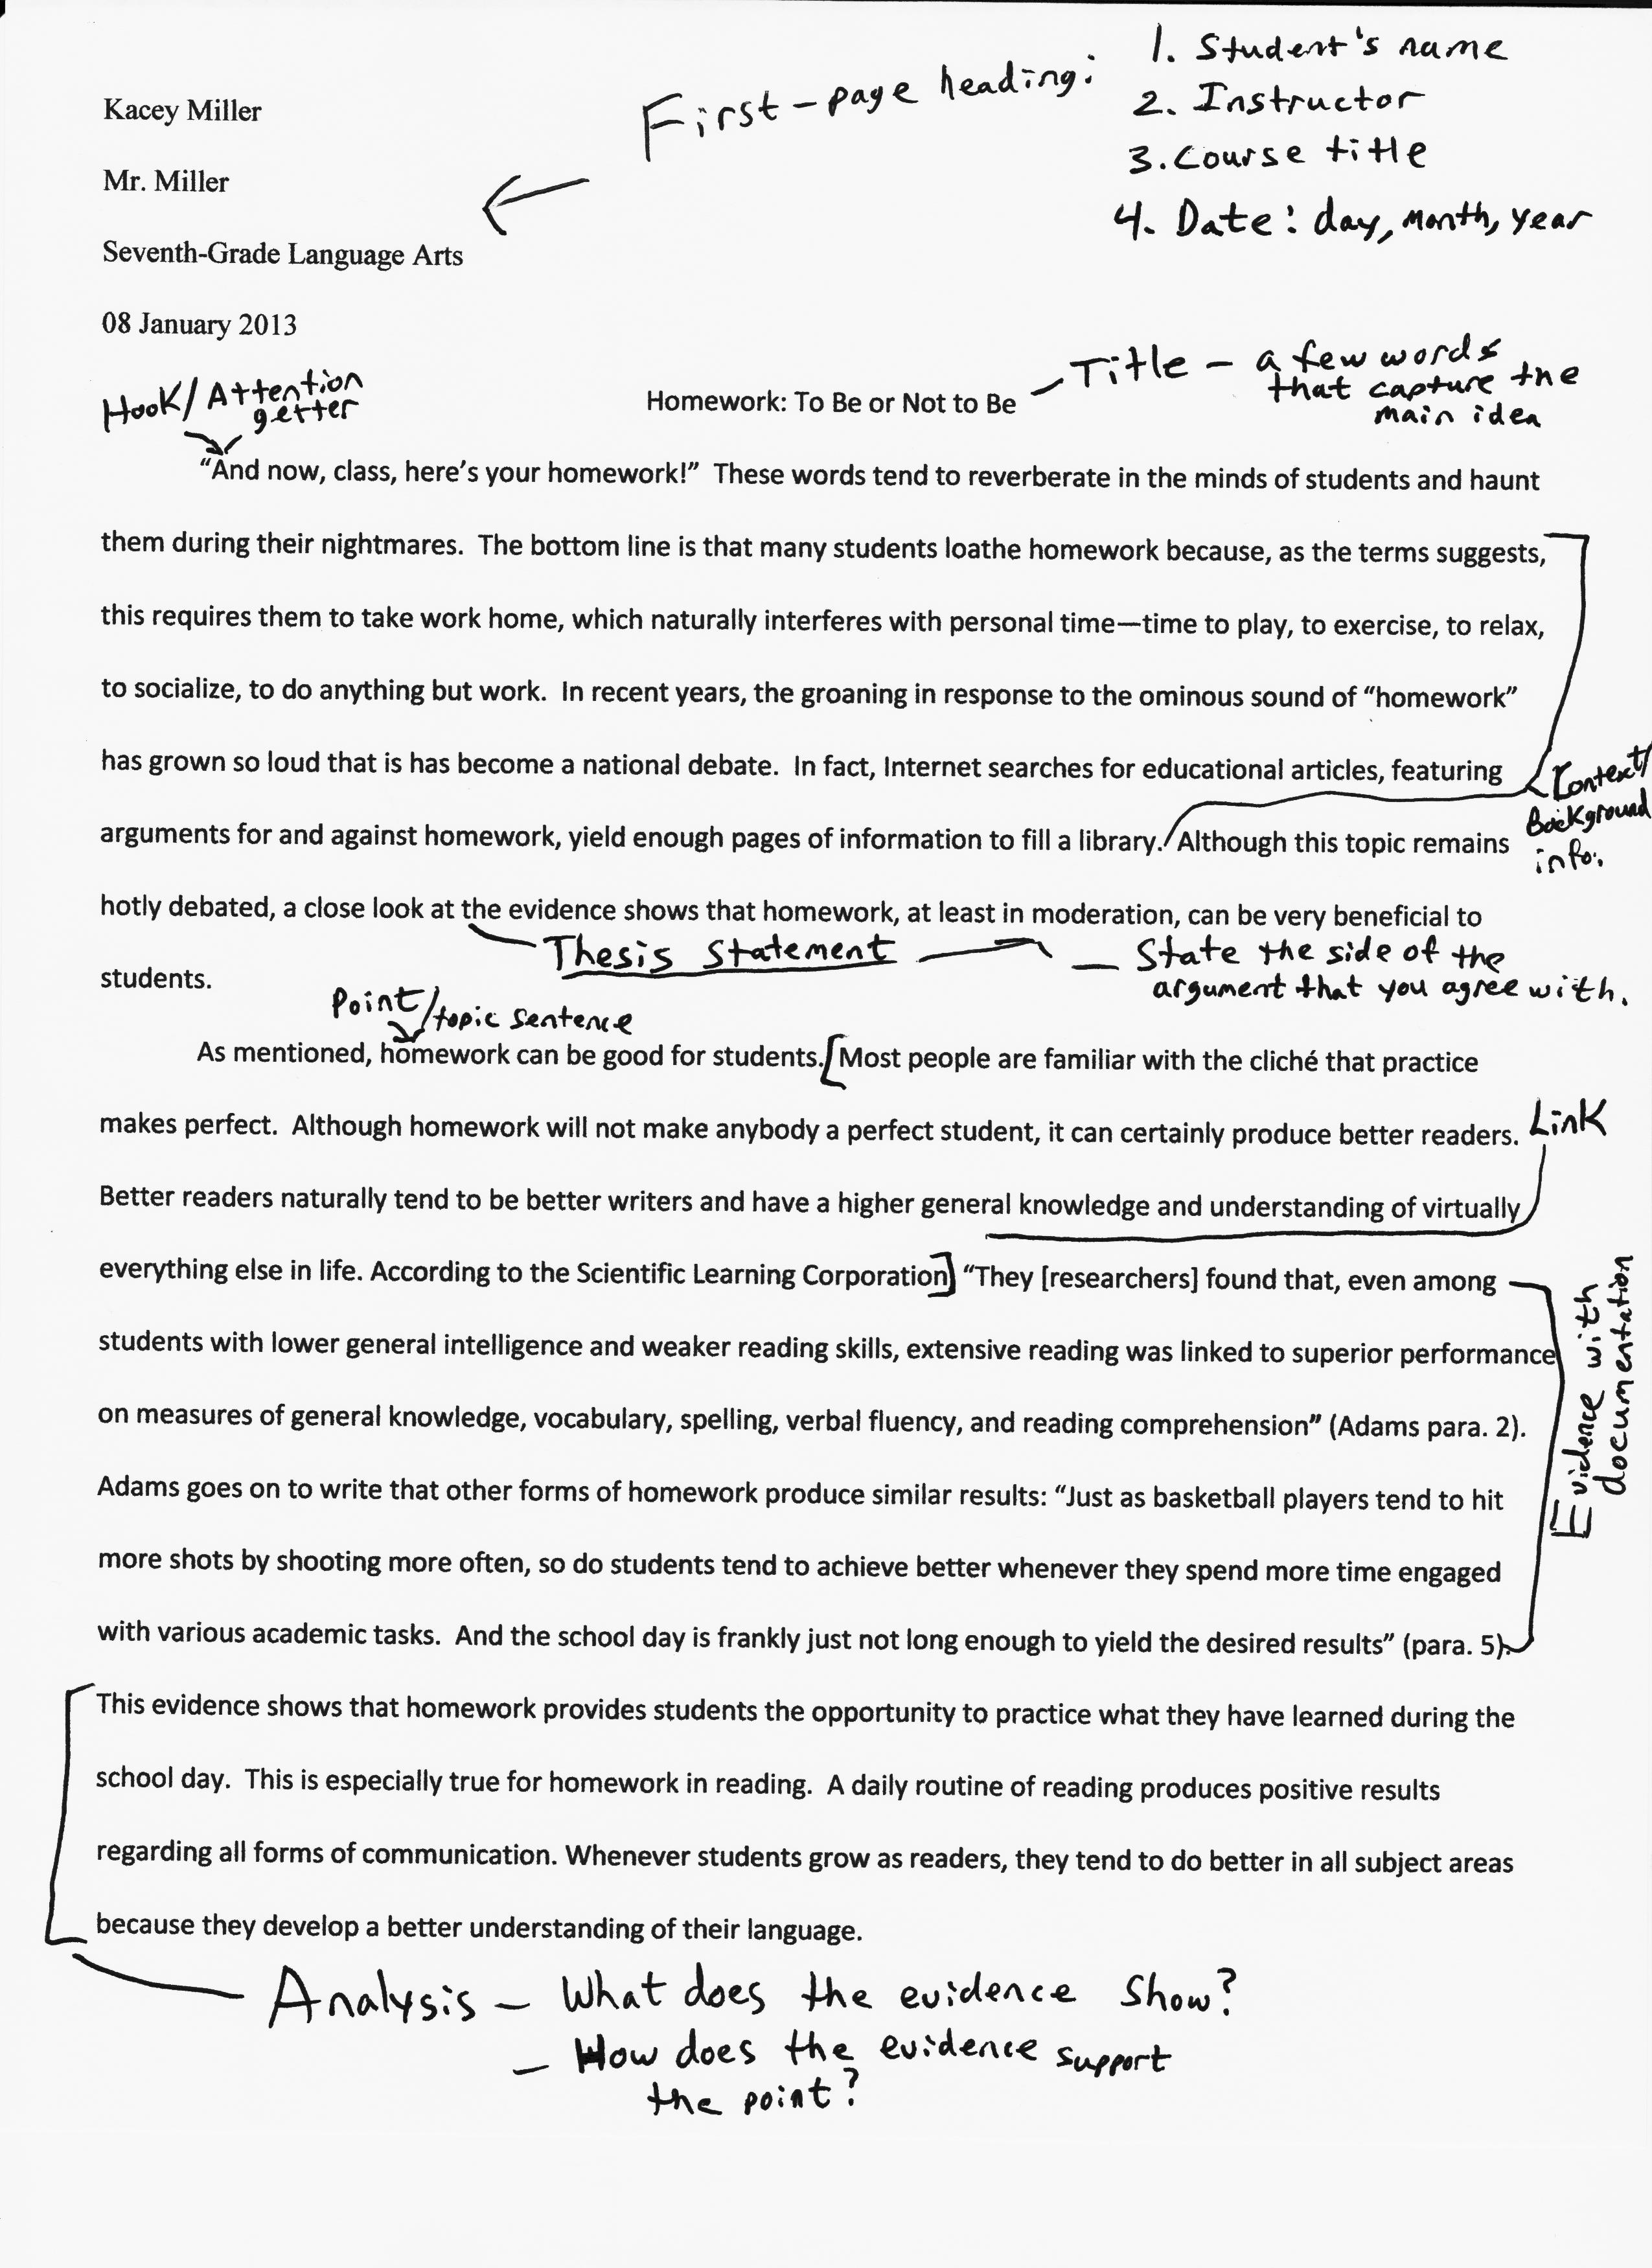 024 Mentor20argument20essay20page20120001 Essay Example Free Awesome Persuasive Outline Template On Texting While Driving Examples Full